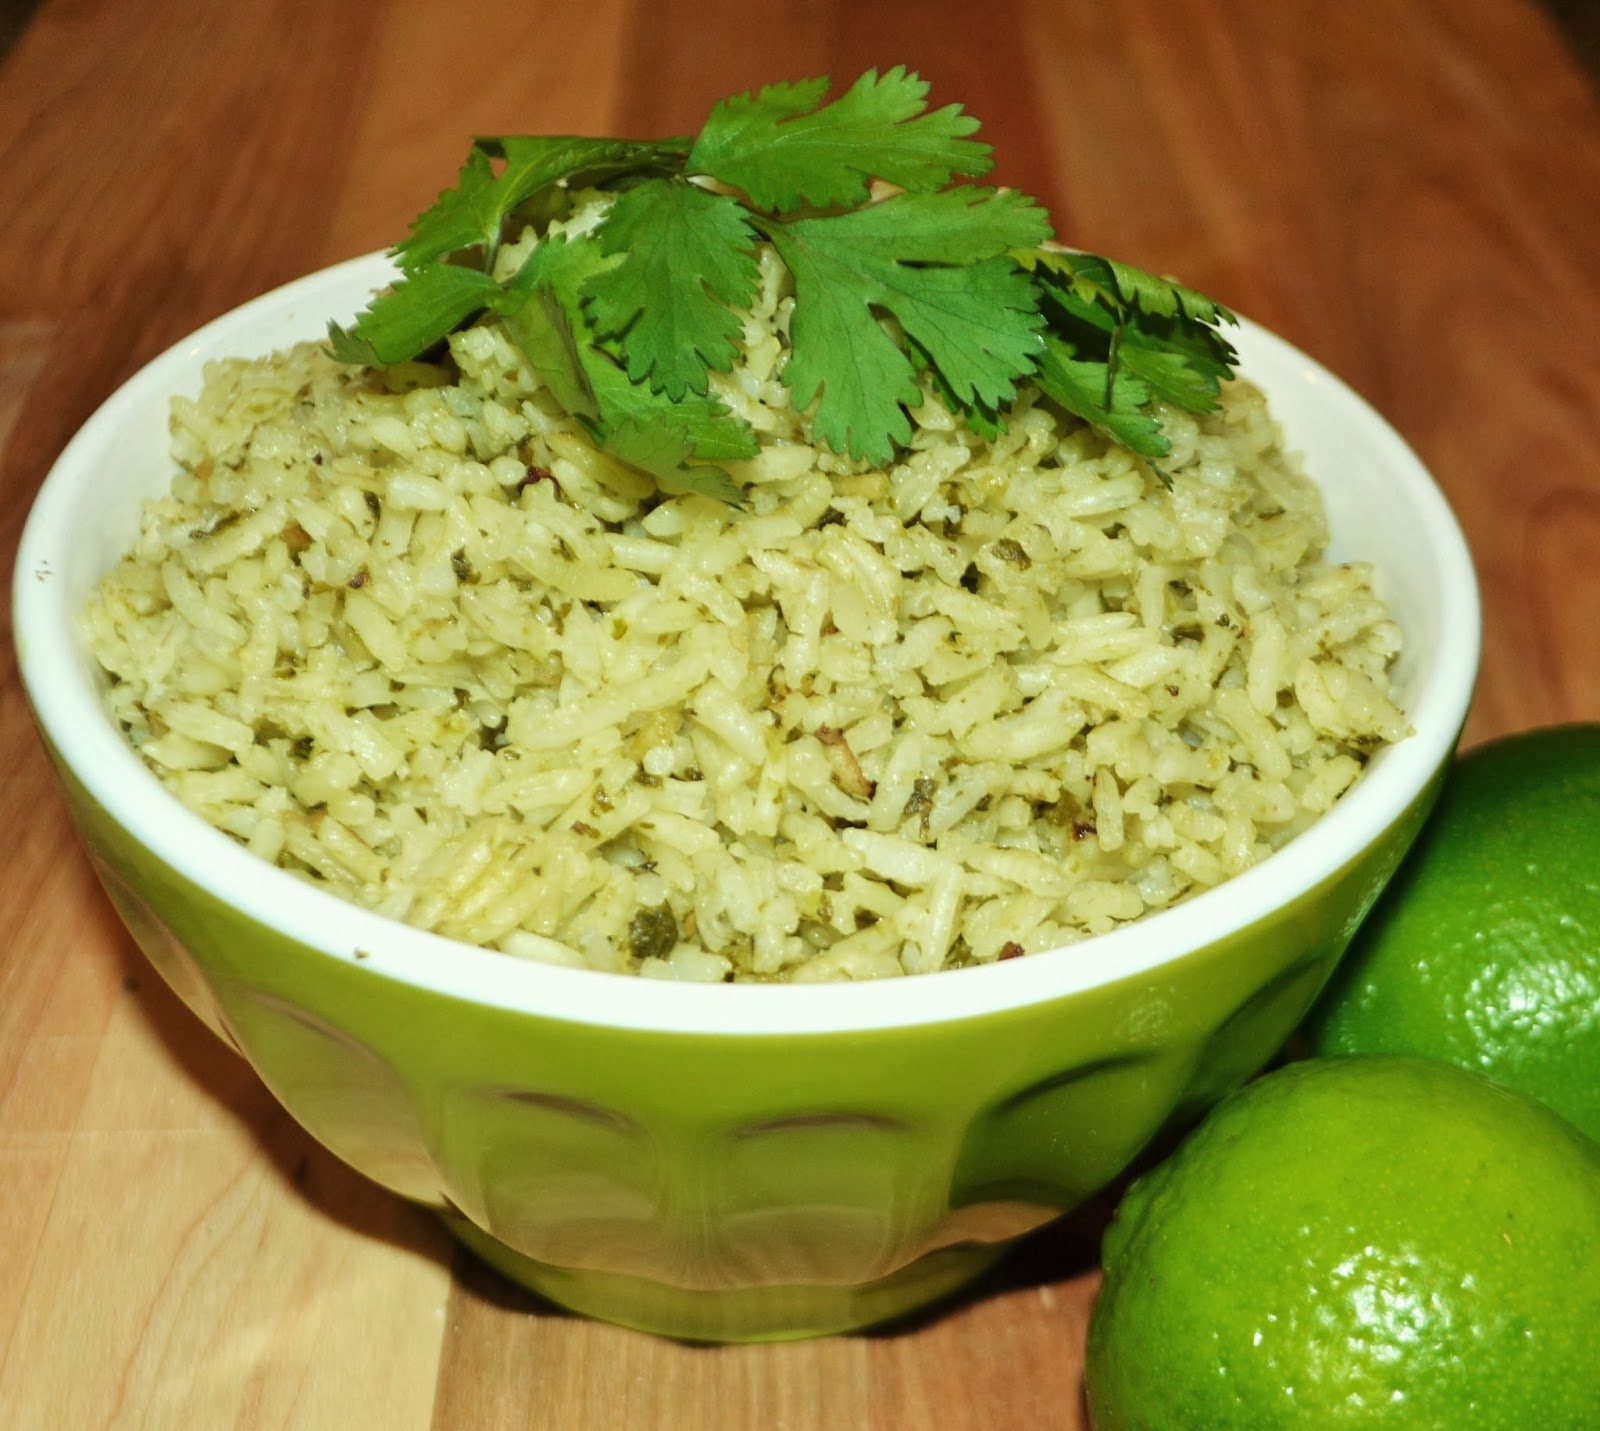 cafe rio copycat cilantro lime rice 5 3 4 cup water 3 cups rice ...